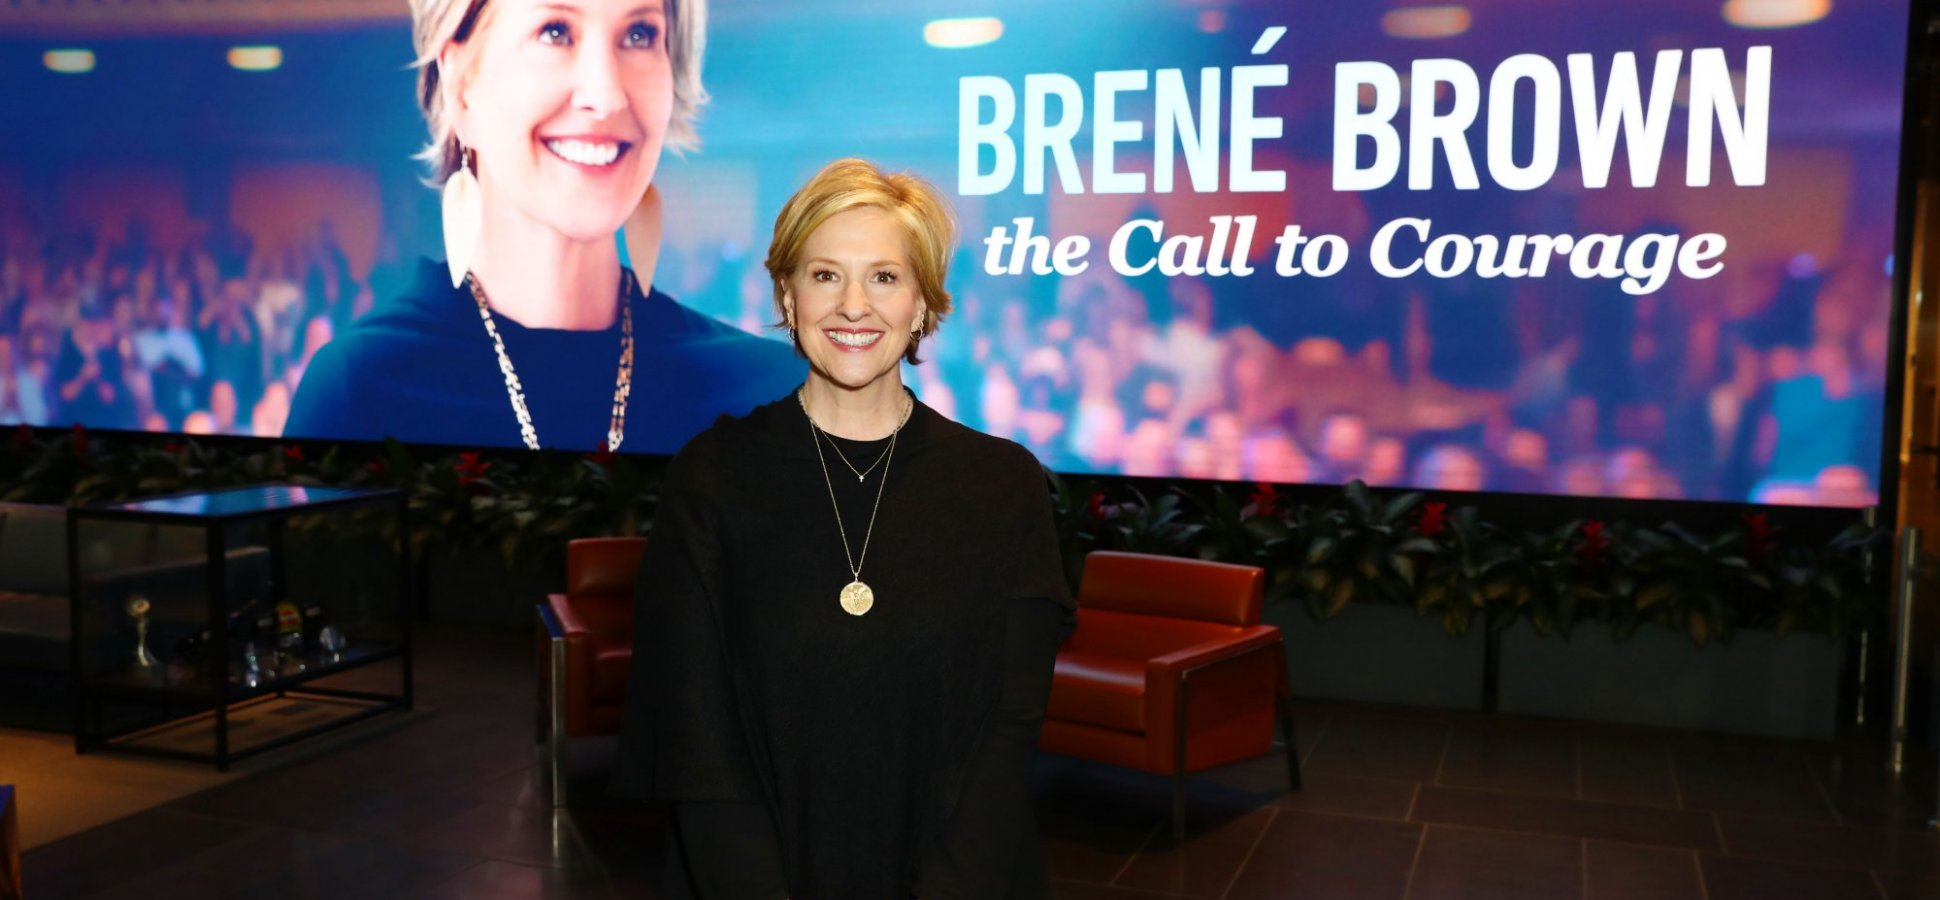 Brené Brown on the 1 Life Lesson You Need to Learn to Be Happier at Work and in Life